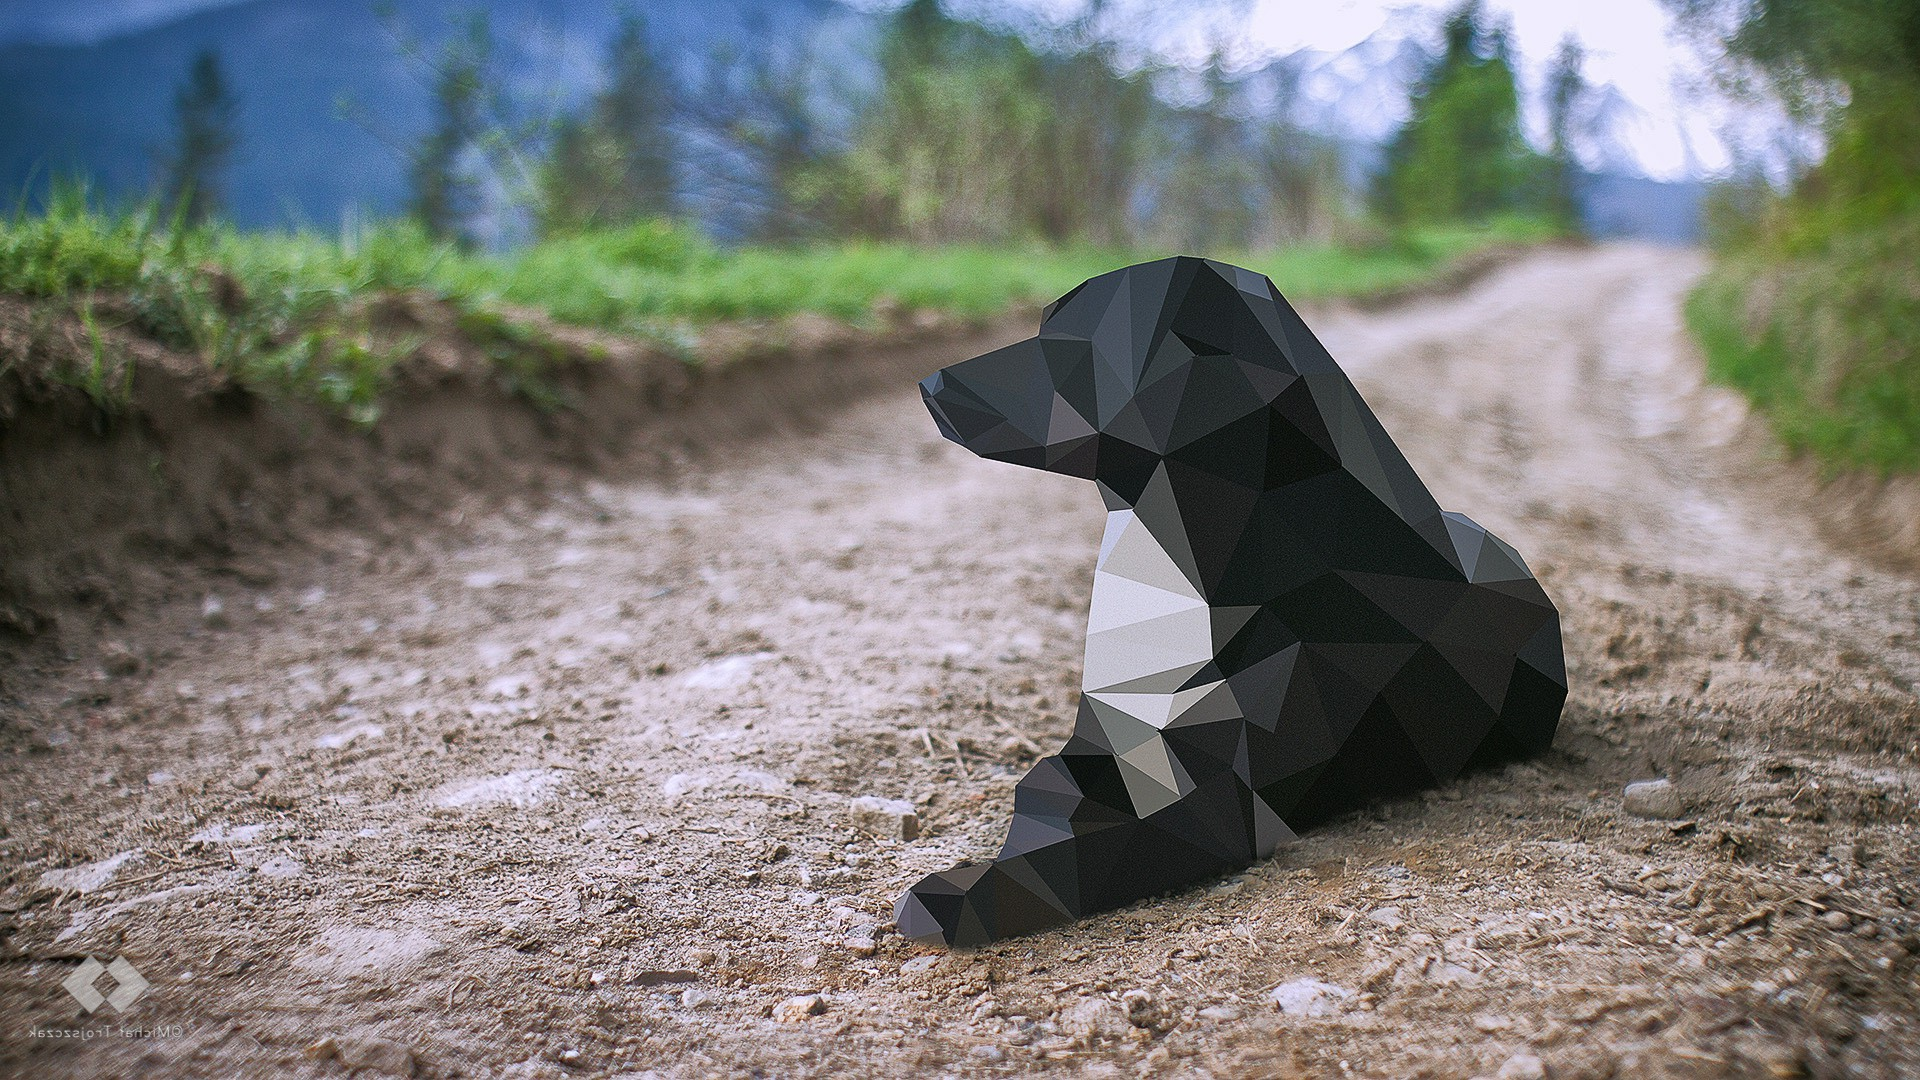 3840x1080 Wallpaper Cars Reddut Dog Low Poly Animals Wallpapers Hd Desktop And Mobile